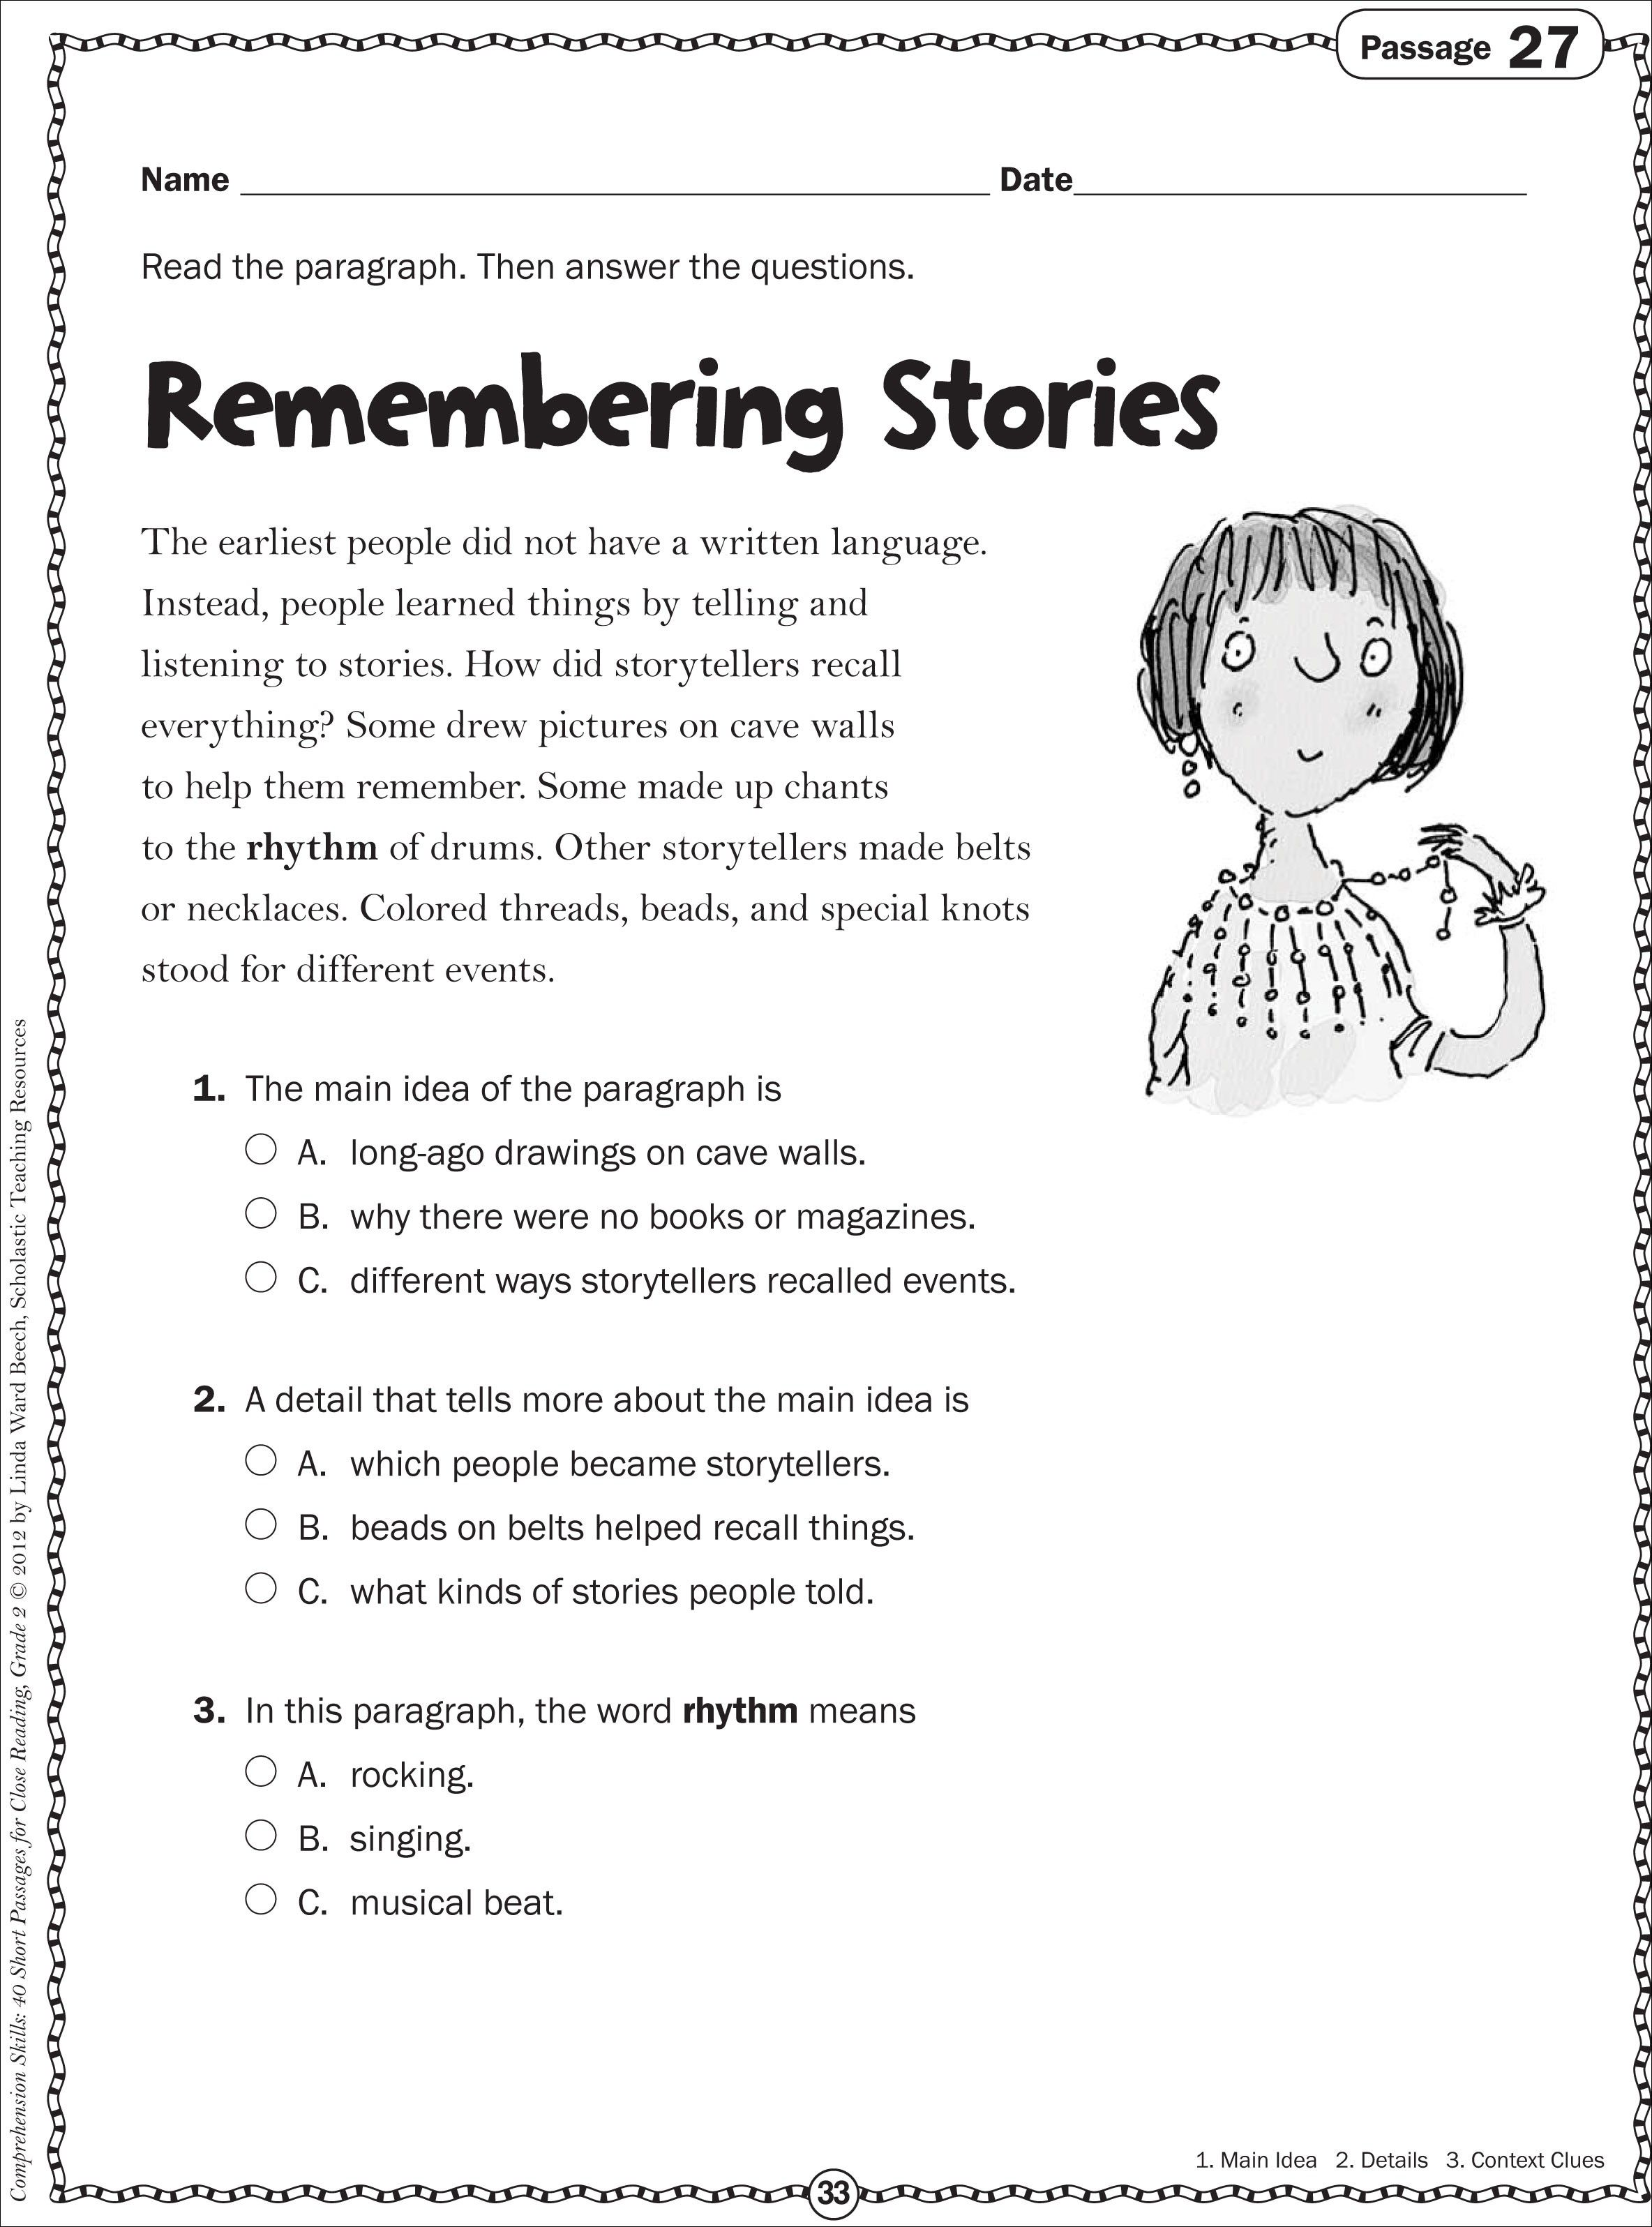 Worksheets Grade 2 Reading Comprehension Worksheets grade 2 reading passages memarchoapraga school pinterest memarchoapraga